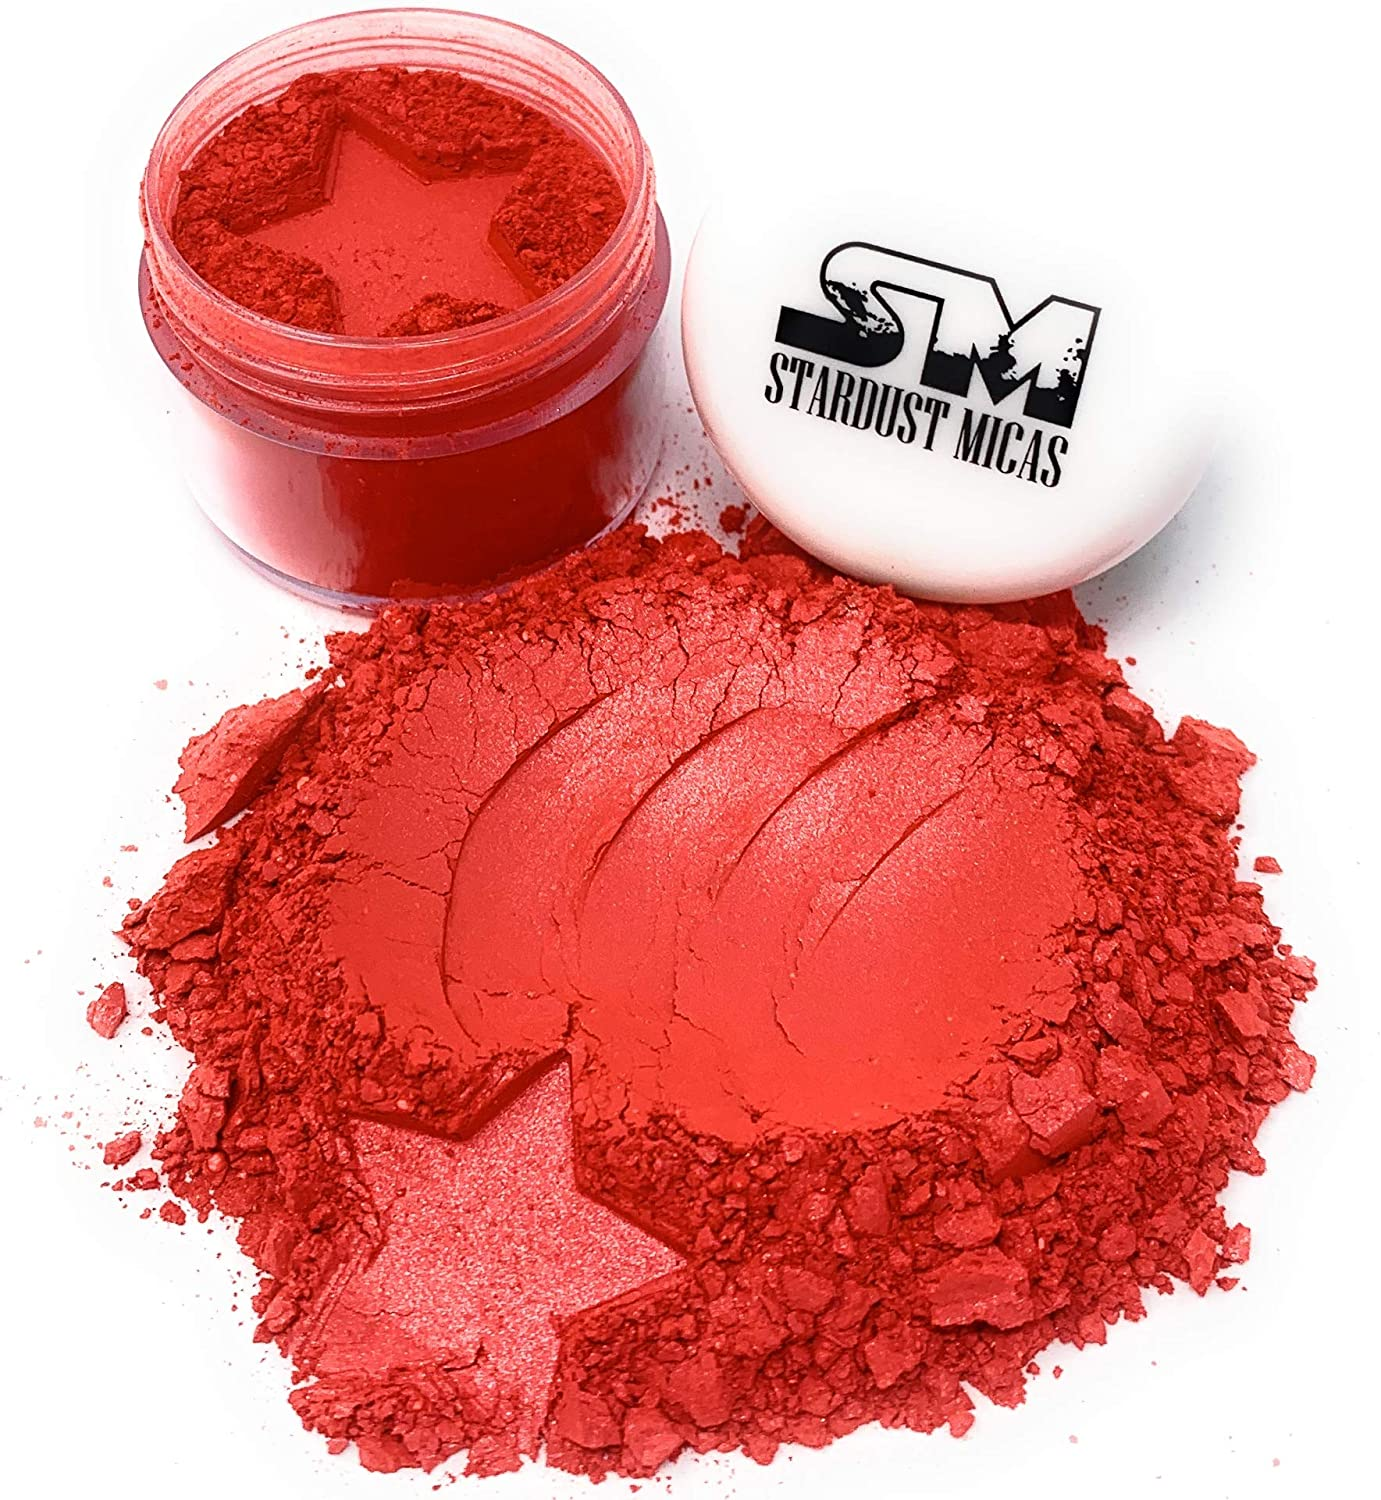 True Red Mica Pigment Powder for Cold Process Soap Making, True Red Color Pigment Powder Colorant, Color Stable Non-Bleeding, Red Pigment Powder for Resin, Stardust Micas (Truly Red, 10 Gram Jar)